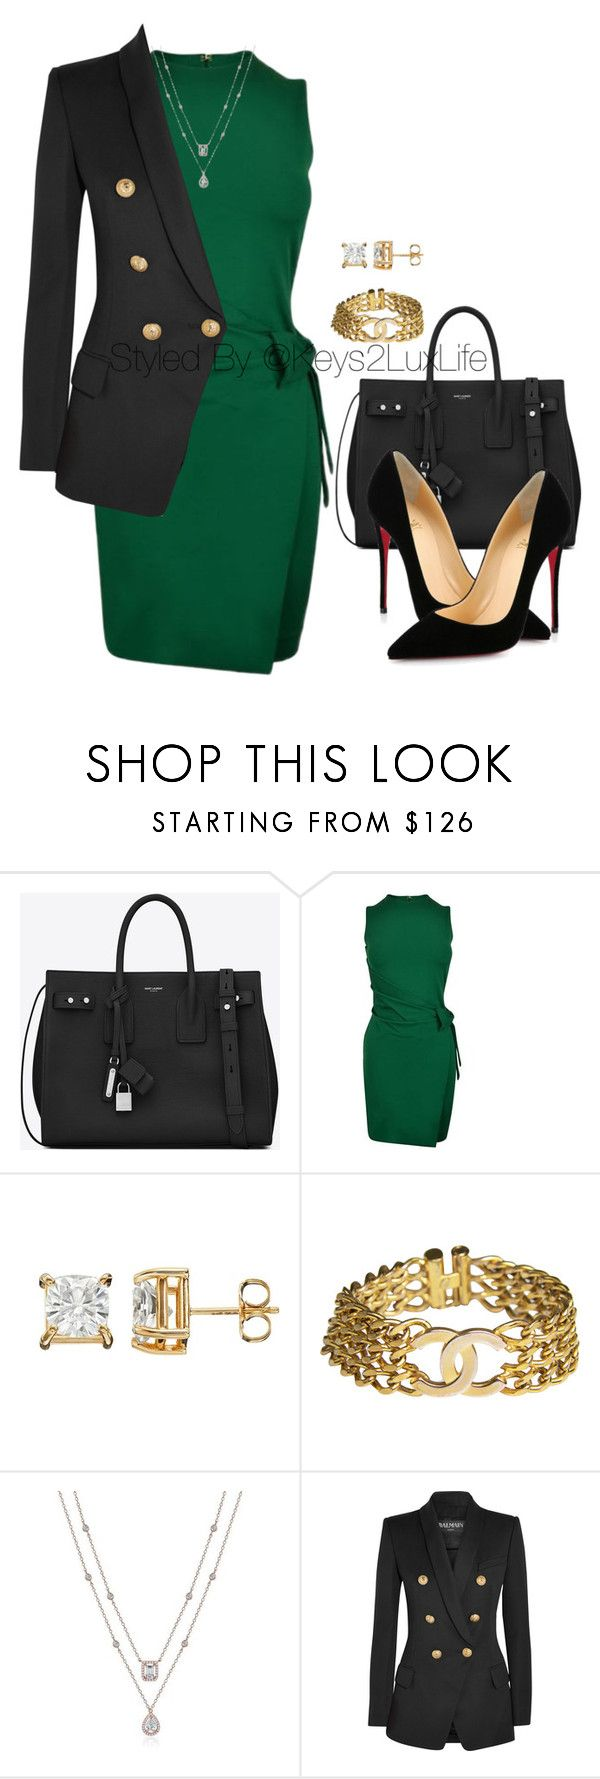 """Interview"" by keys2luxlife ❤ liked on Polyvore featuring Yves Saint Laurent, Dsquared2, Chanel, Balmain and Christian Louboutin"